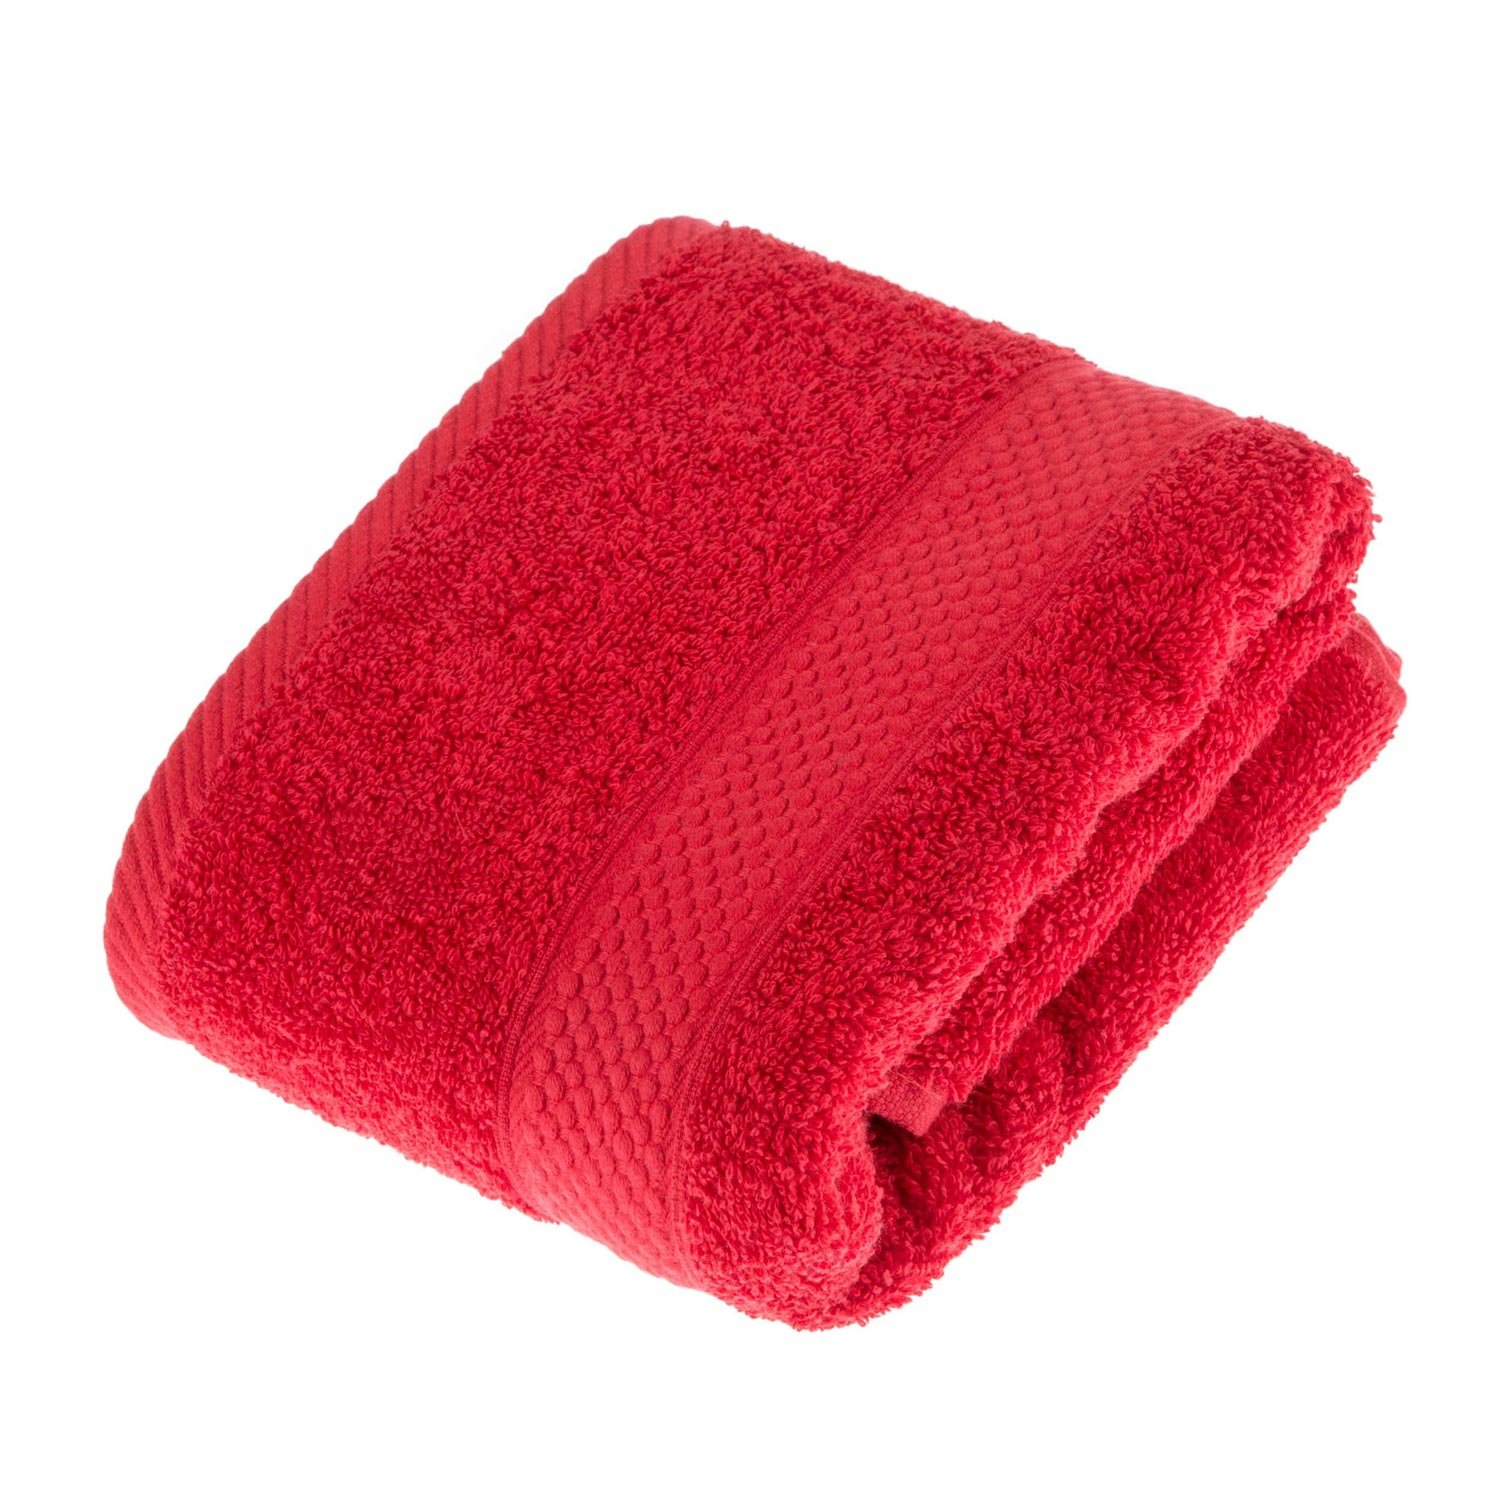 Homescapes Turkish Cotton Hand Towel Red Very Soft and Absorbent, 500 GSM Heavy Weight for everyday Luxury by Homescapes